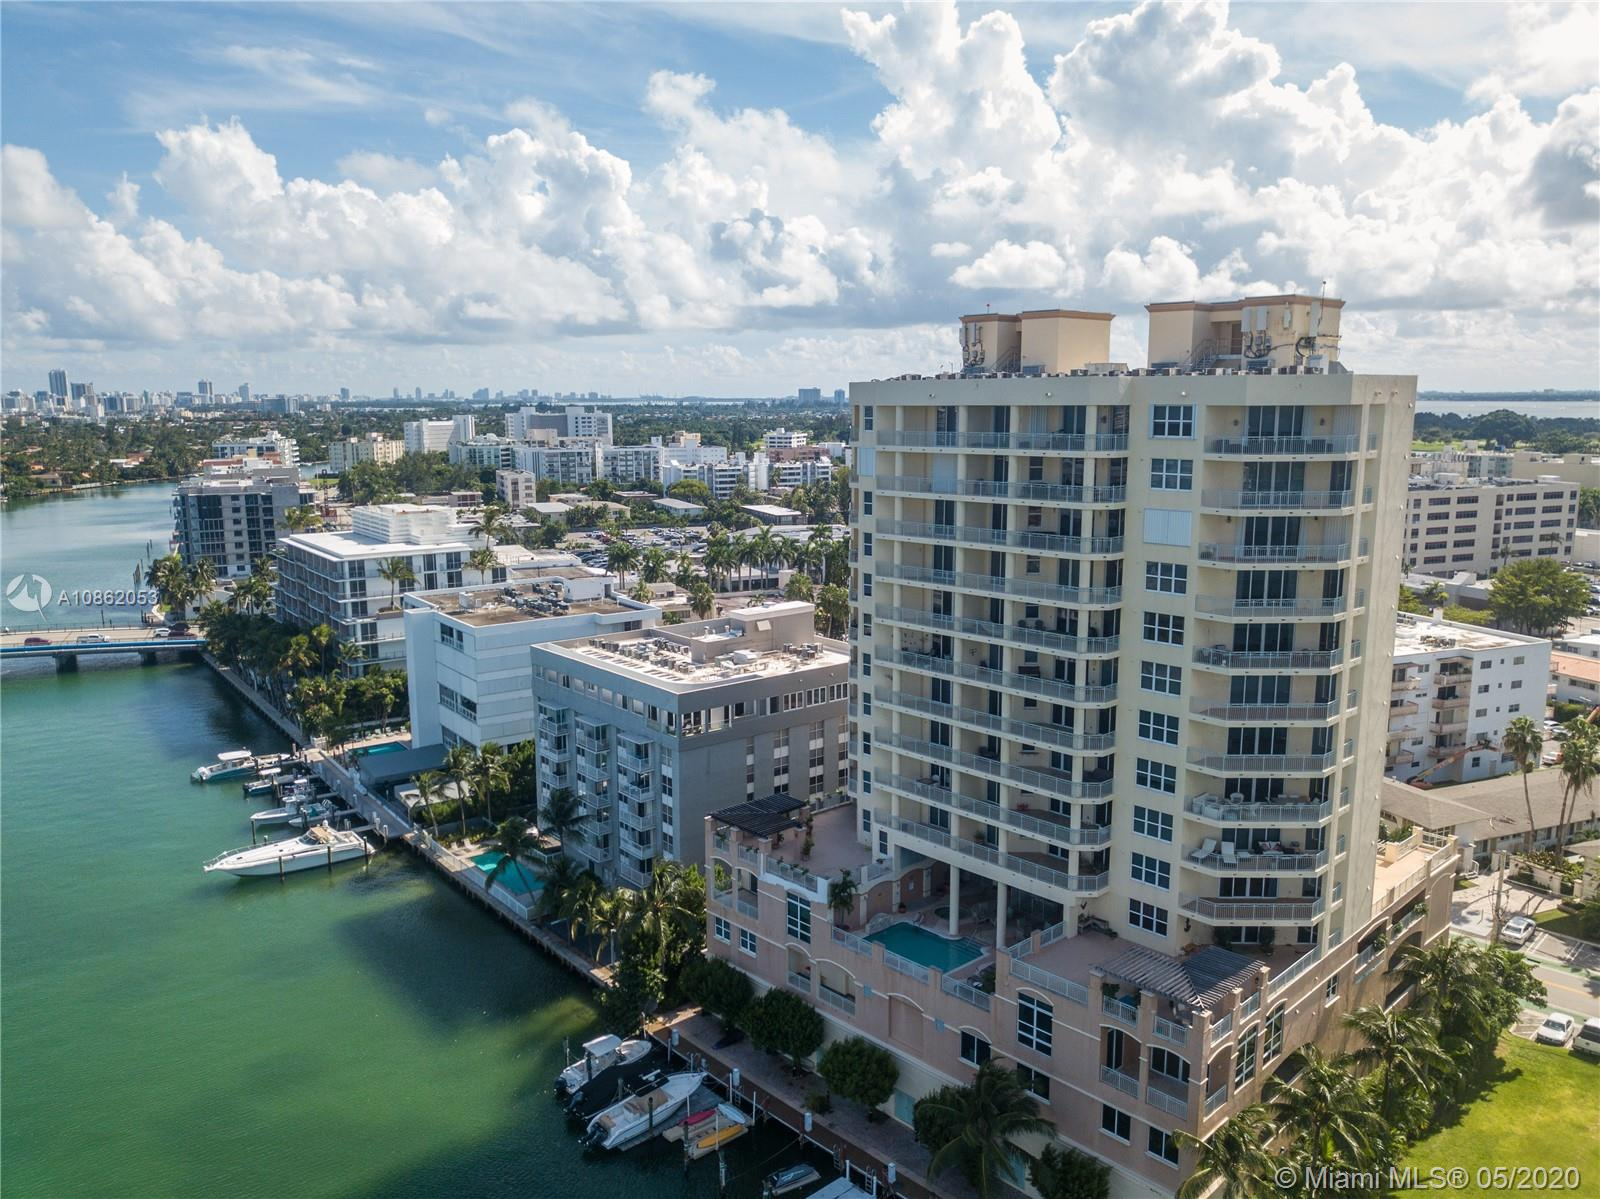 It's a beautiful 11th. floor, two-bedroom, 2.5 bathroom apartment along the intercoastal in Bay Harbor Isles with amazing ocean and city views from two ample balconies. An open floor design with wood flooring greets you as you arrive on the private elevator. It's within walking distance to Bal Harbour Shops and the building has a private boat dock available. it has a two-car garage and a storage unit. Easy to show; call or text listing agent